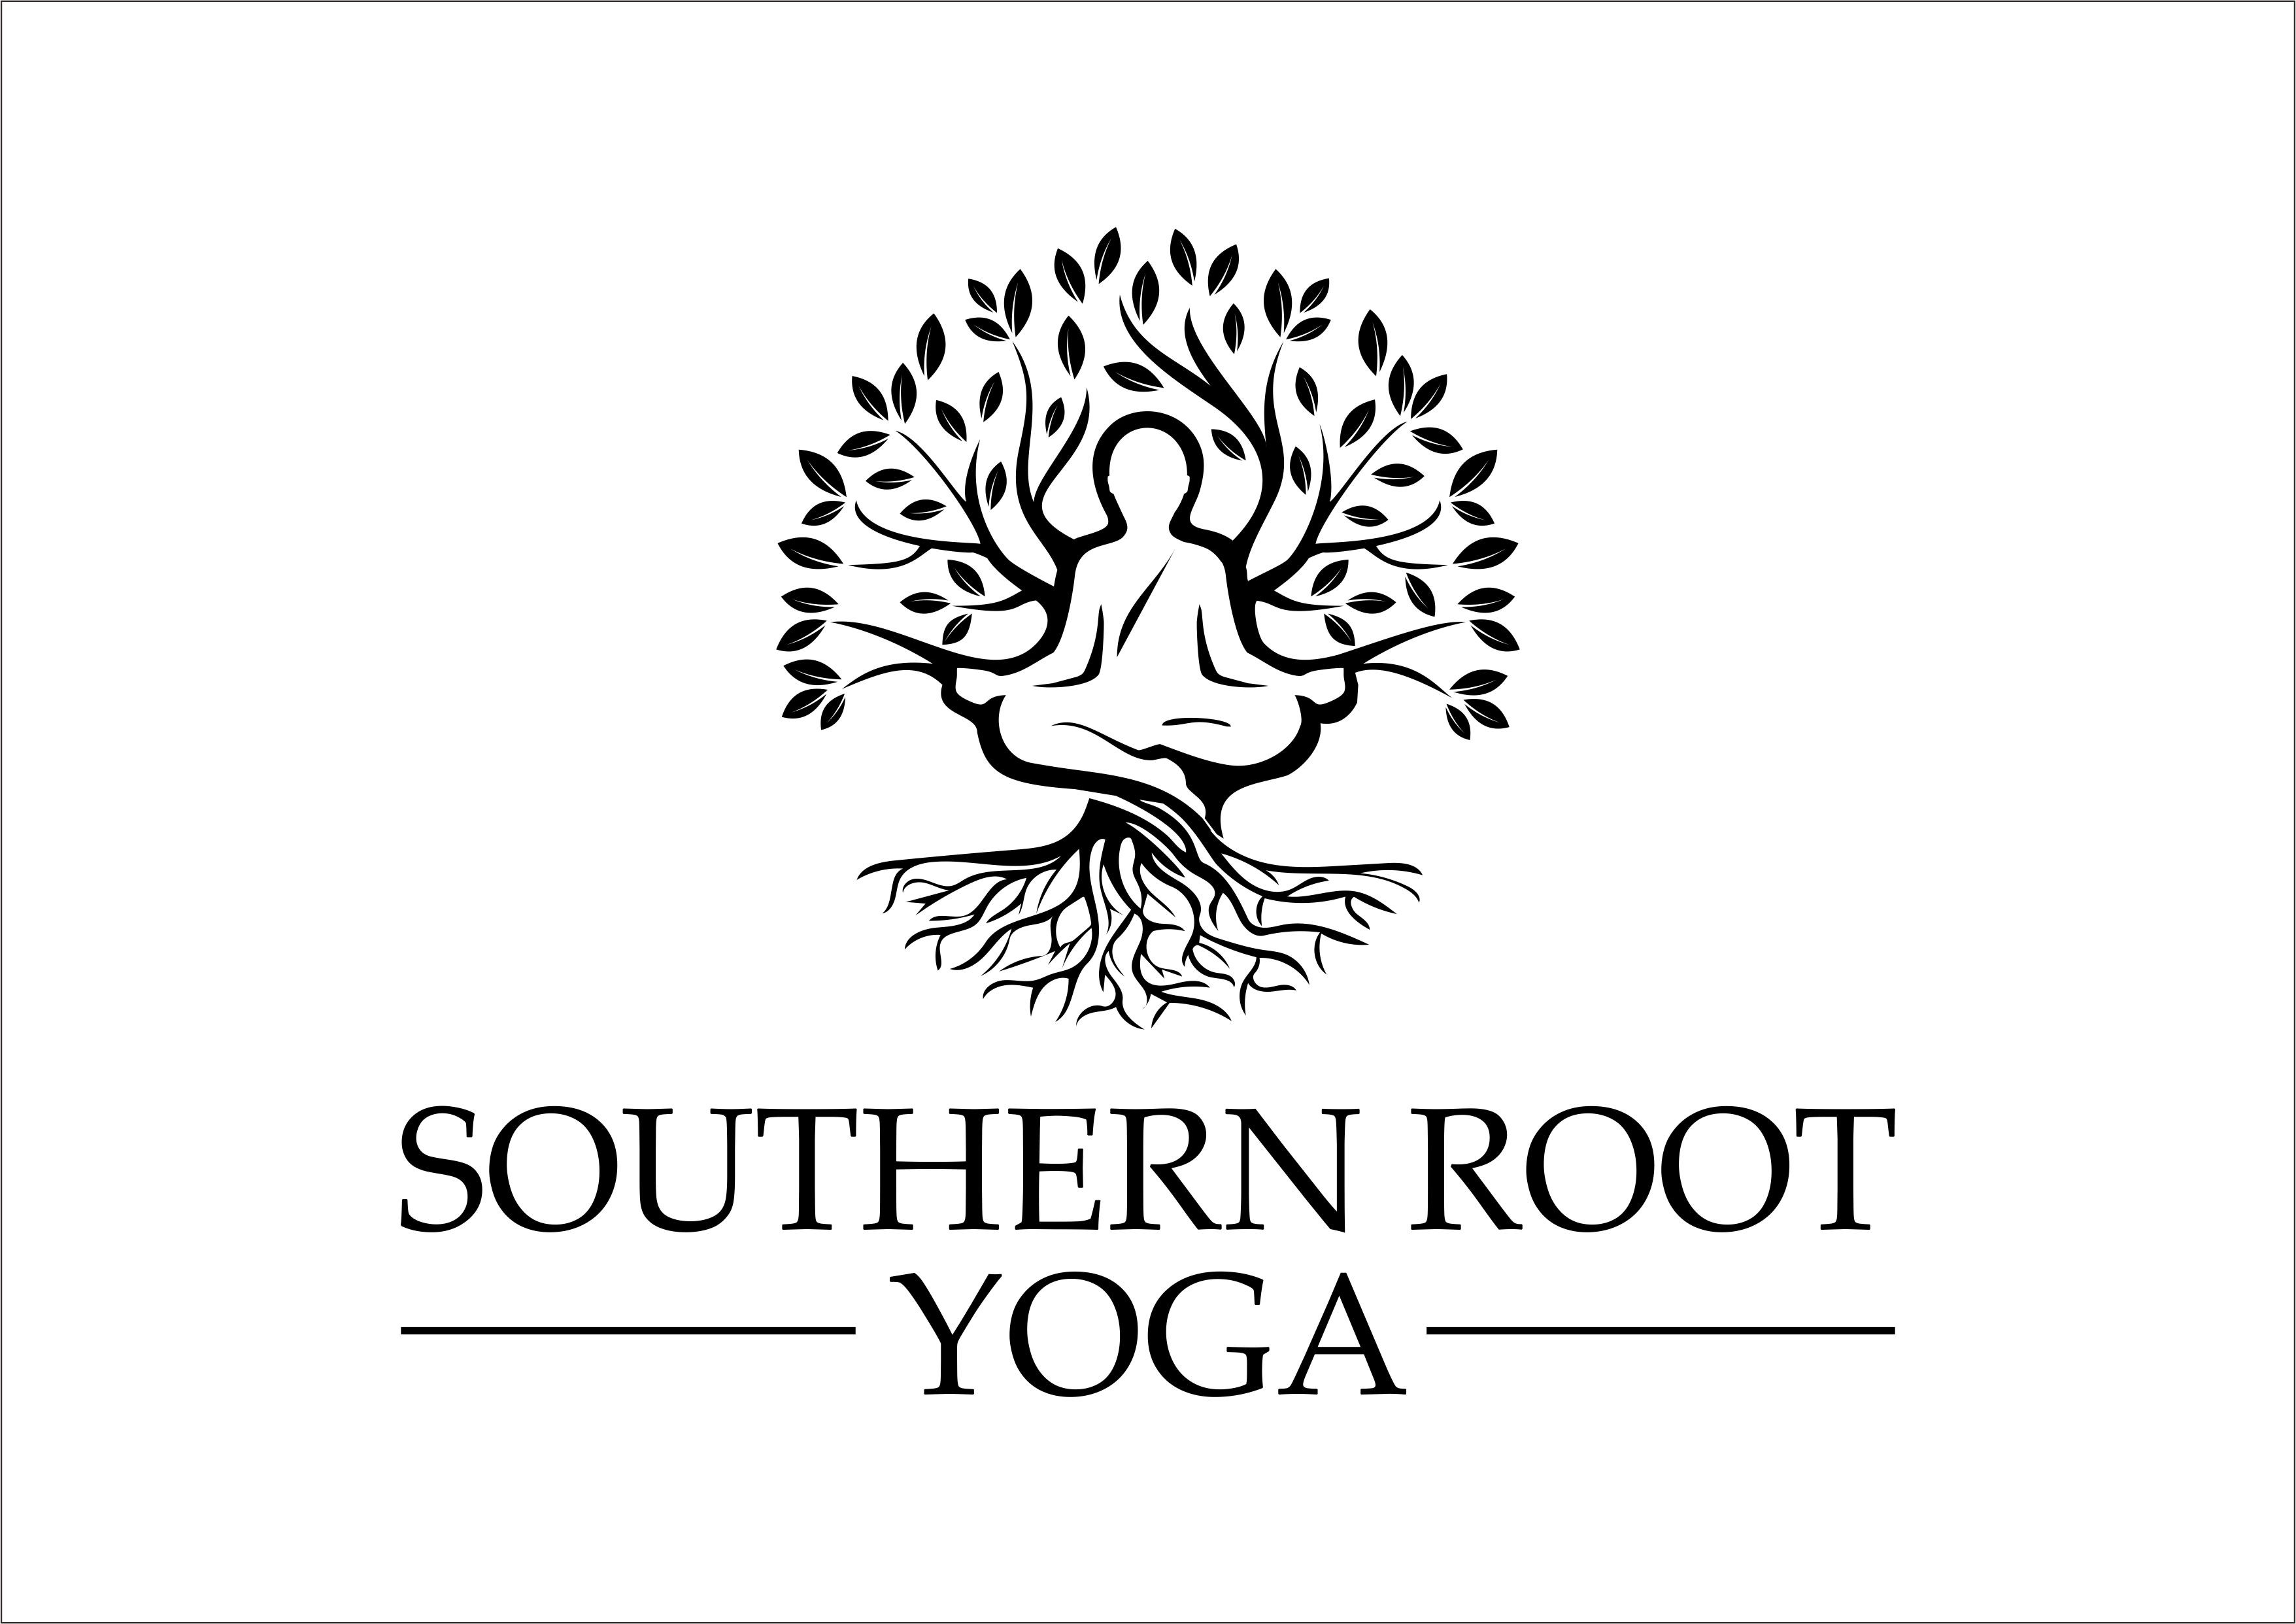 Southern Root Yoga